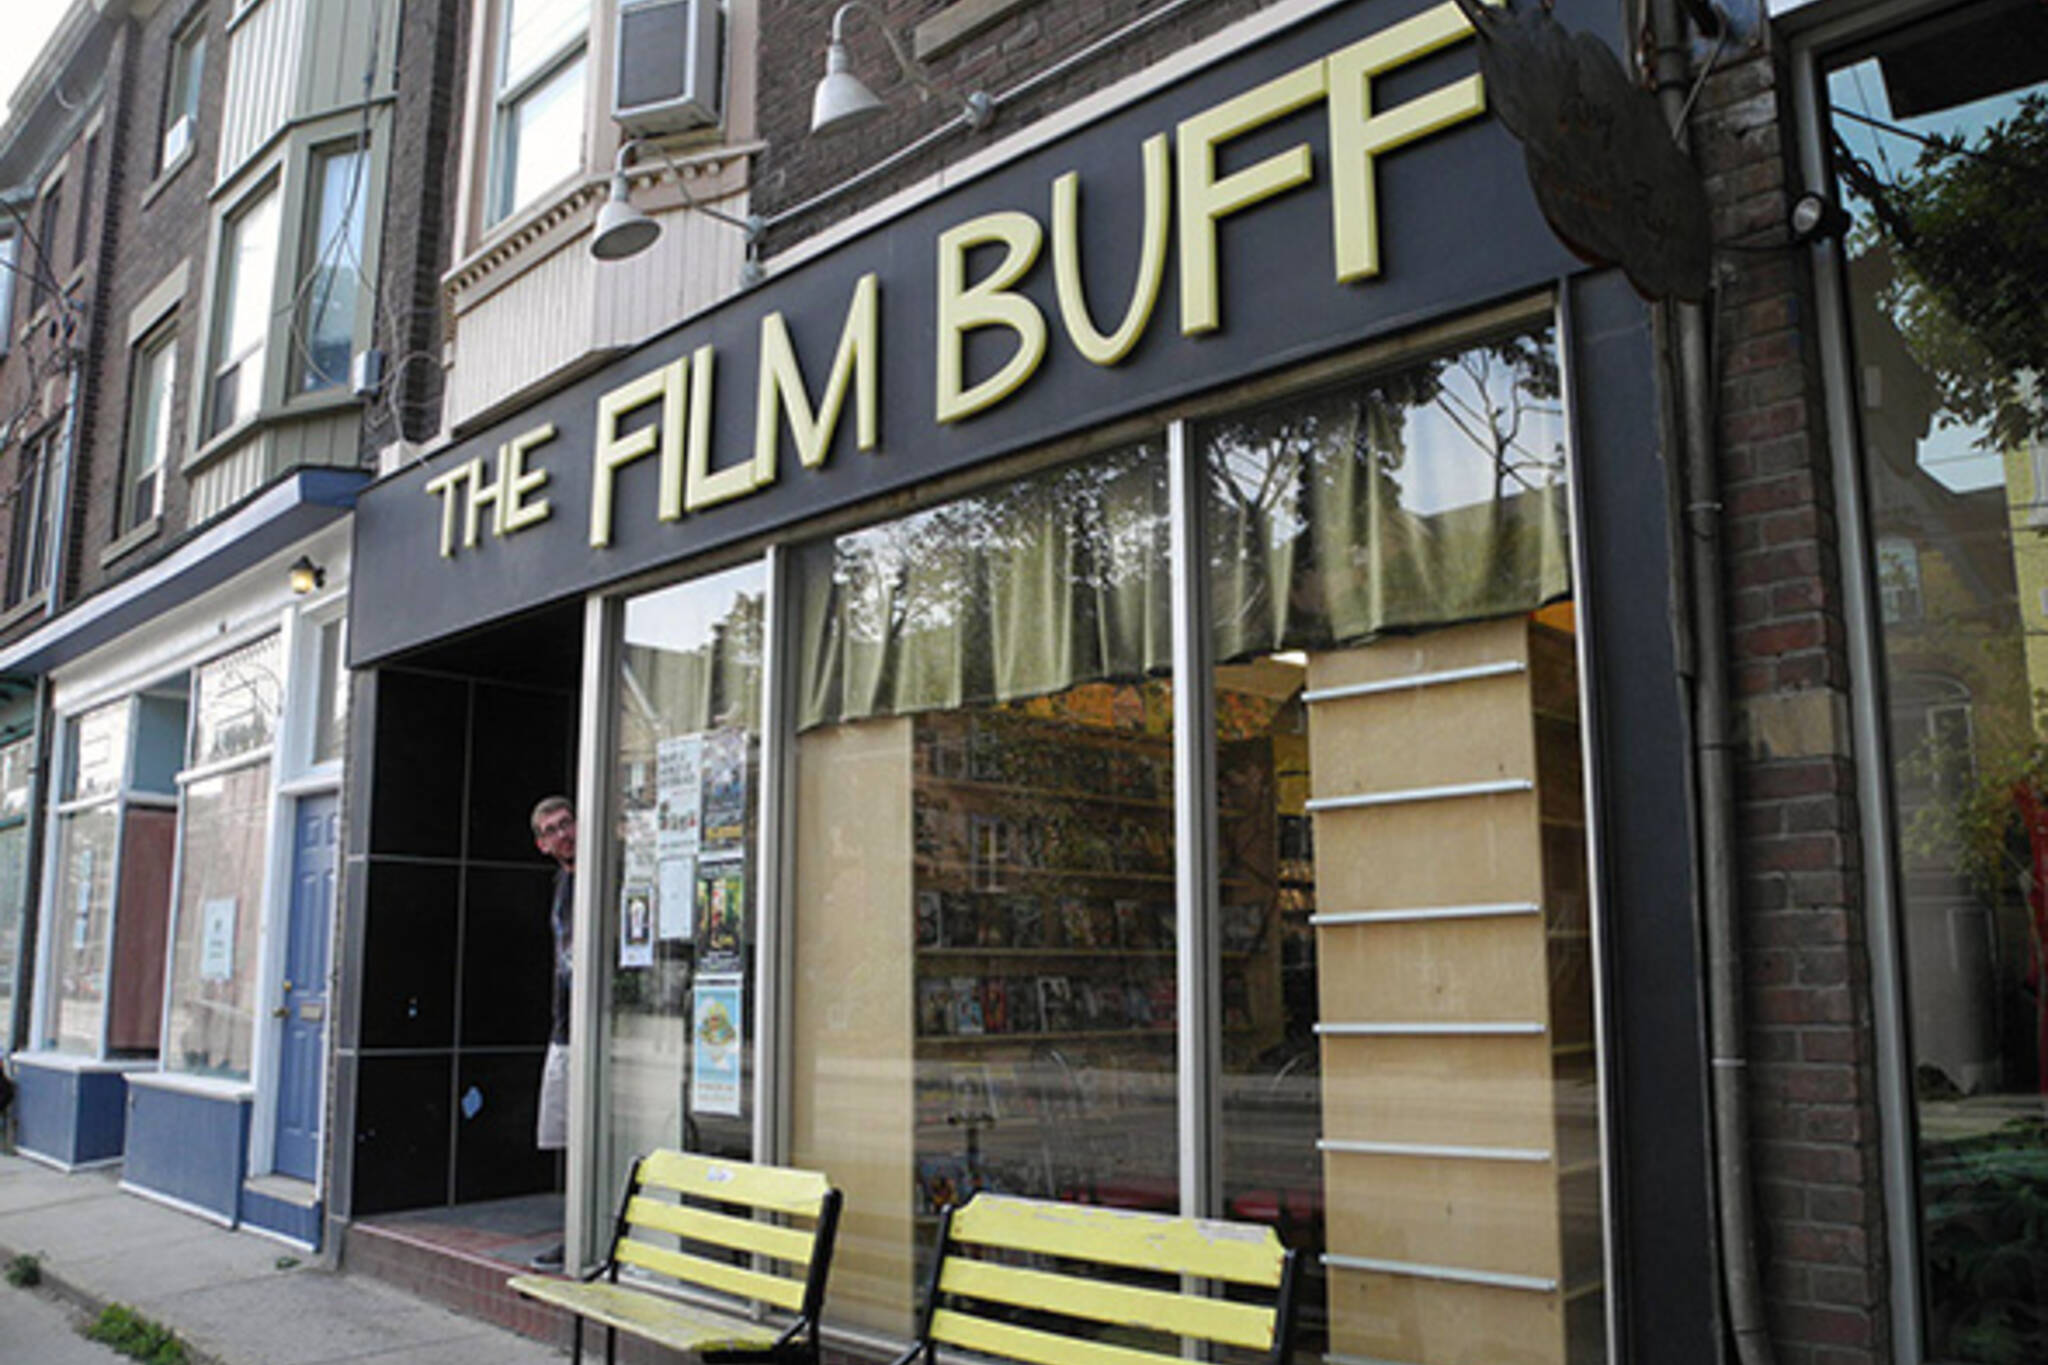 Film Buff East